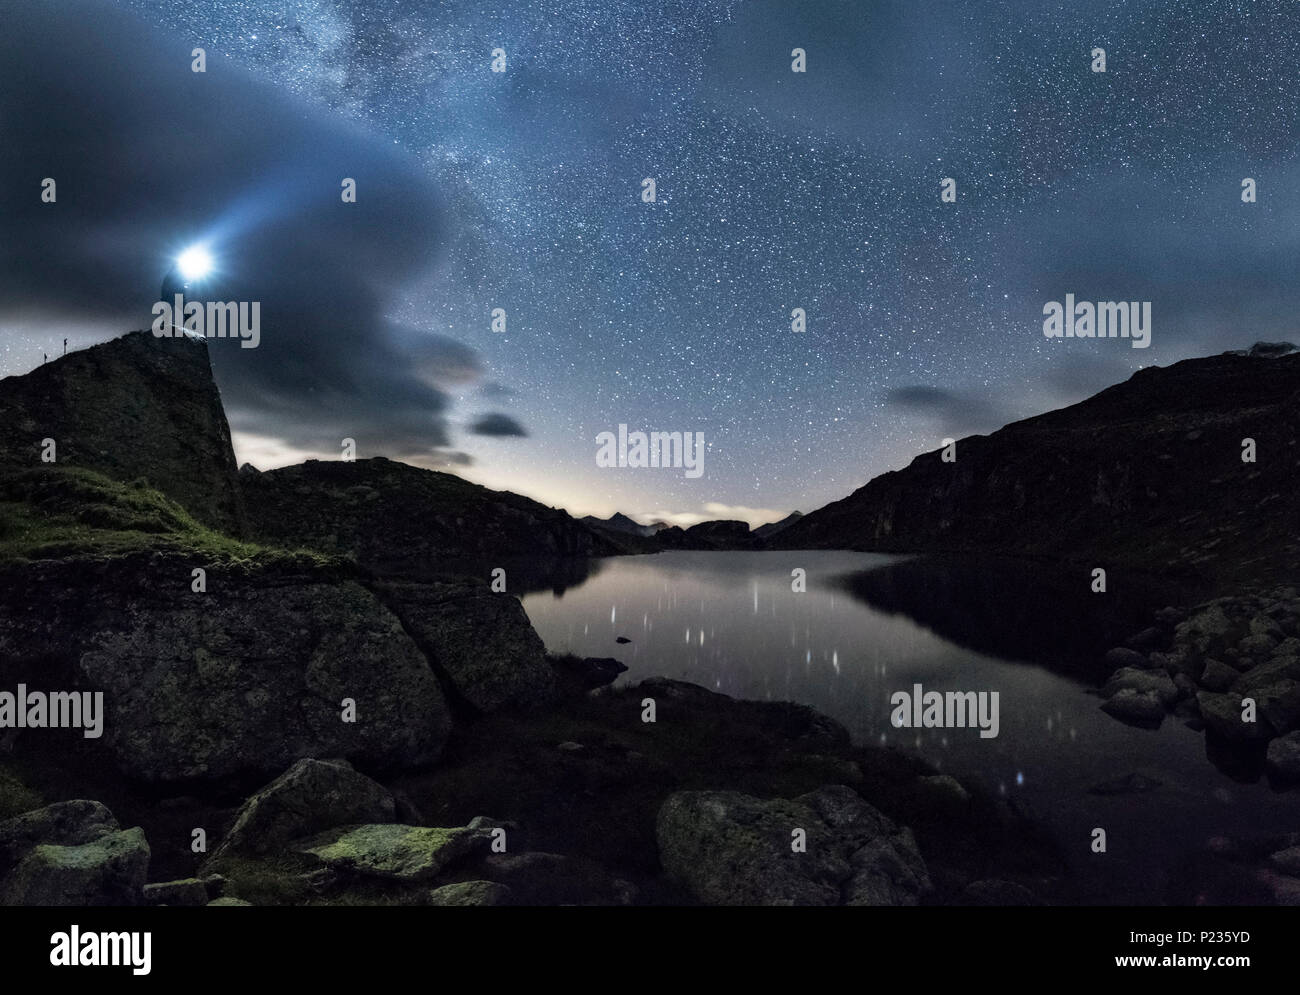 Selfportrait on a mountain lake at the Pfitscherjoch, parts of the Milky Way seen behind the clouds, reflexions of the stars in the water, thunderclouds. Hiker with headlamp - Stock Image